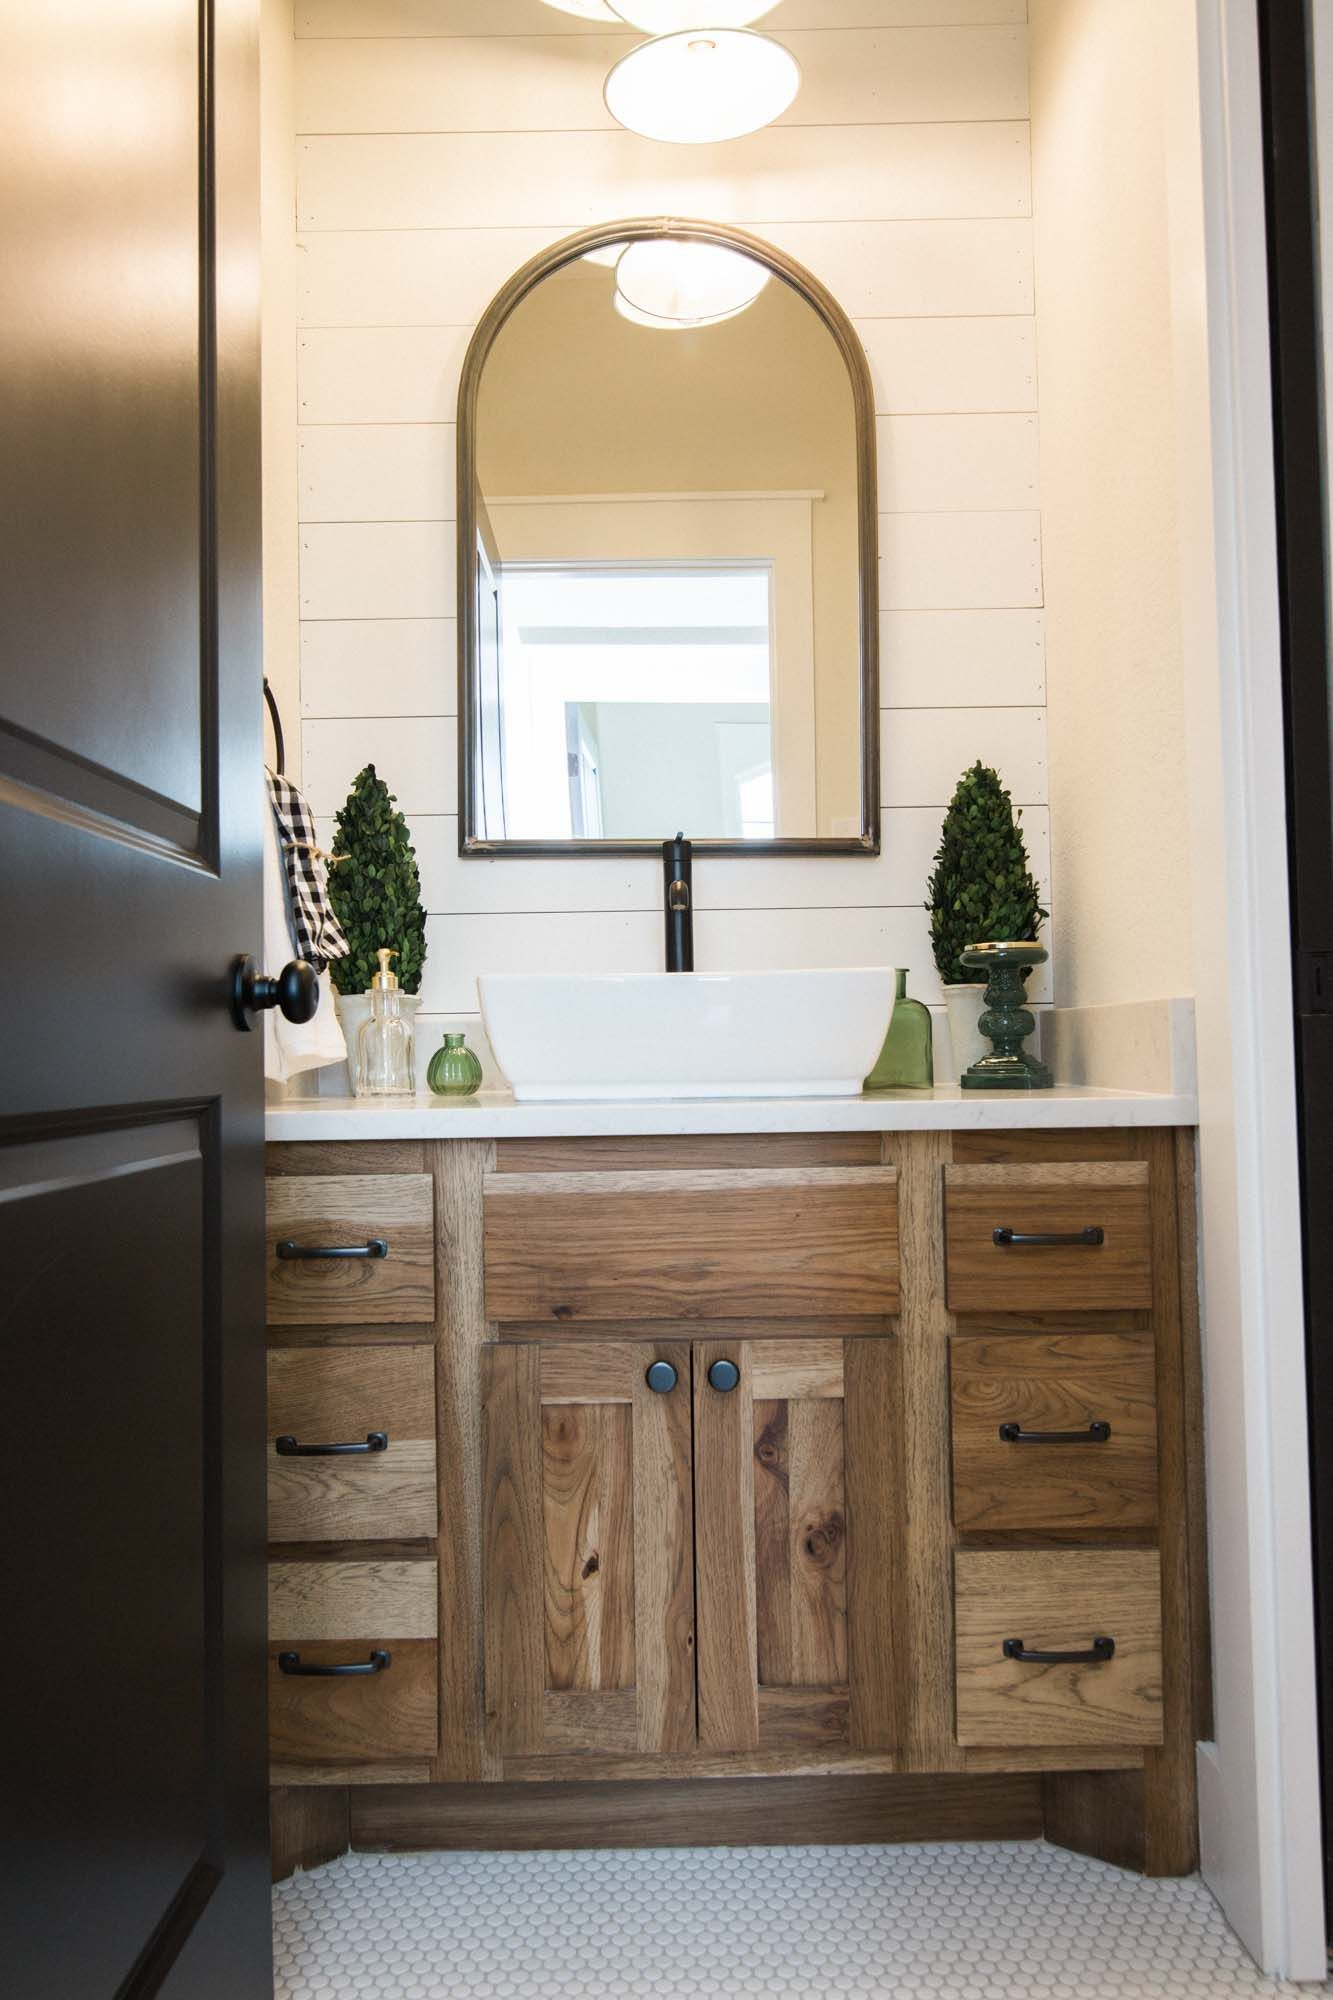 Bathroom Inspiration With White Shiplap And Light Stained Wood Cabinets White Bathroom Cabinets Trendy Bathroom Tiles Wood Bathroom